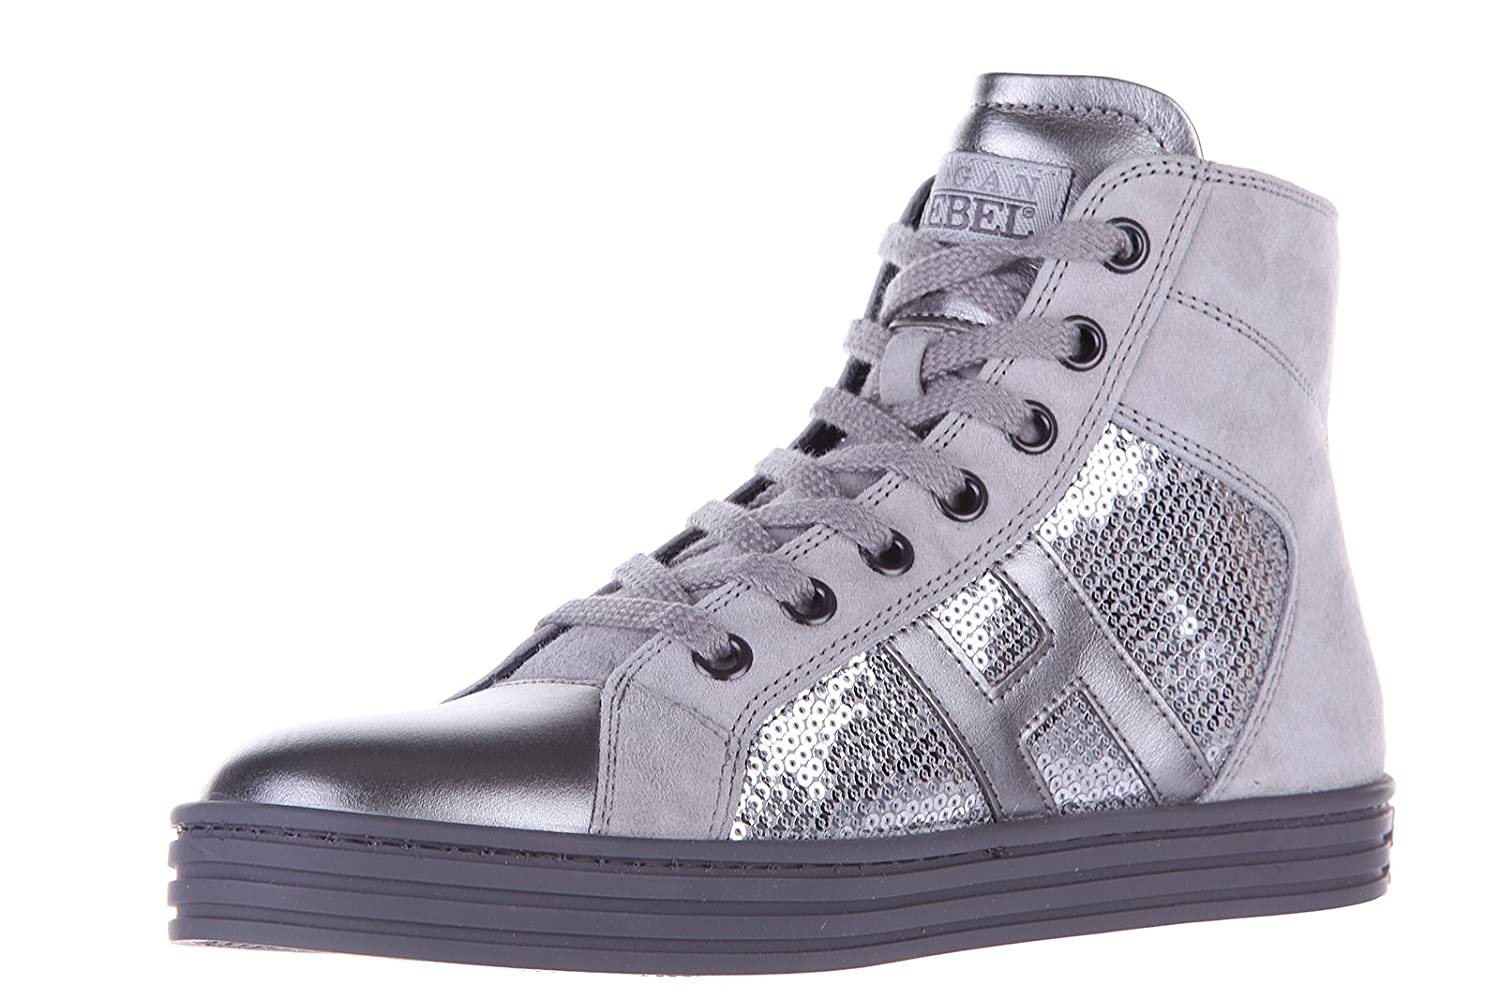 e79ffb724b86f Hogan Rebel Girls Shoes Child Leather high top Sneakers r141 Paillettes  Silver  Amazon.co.uk  Shoes   Bags